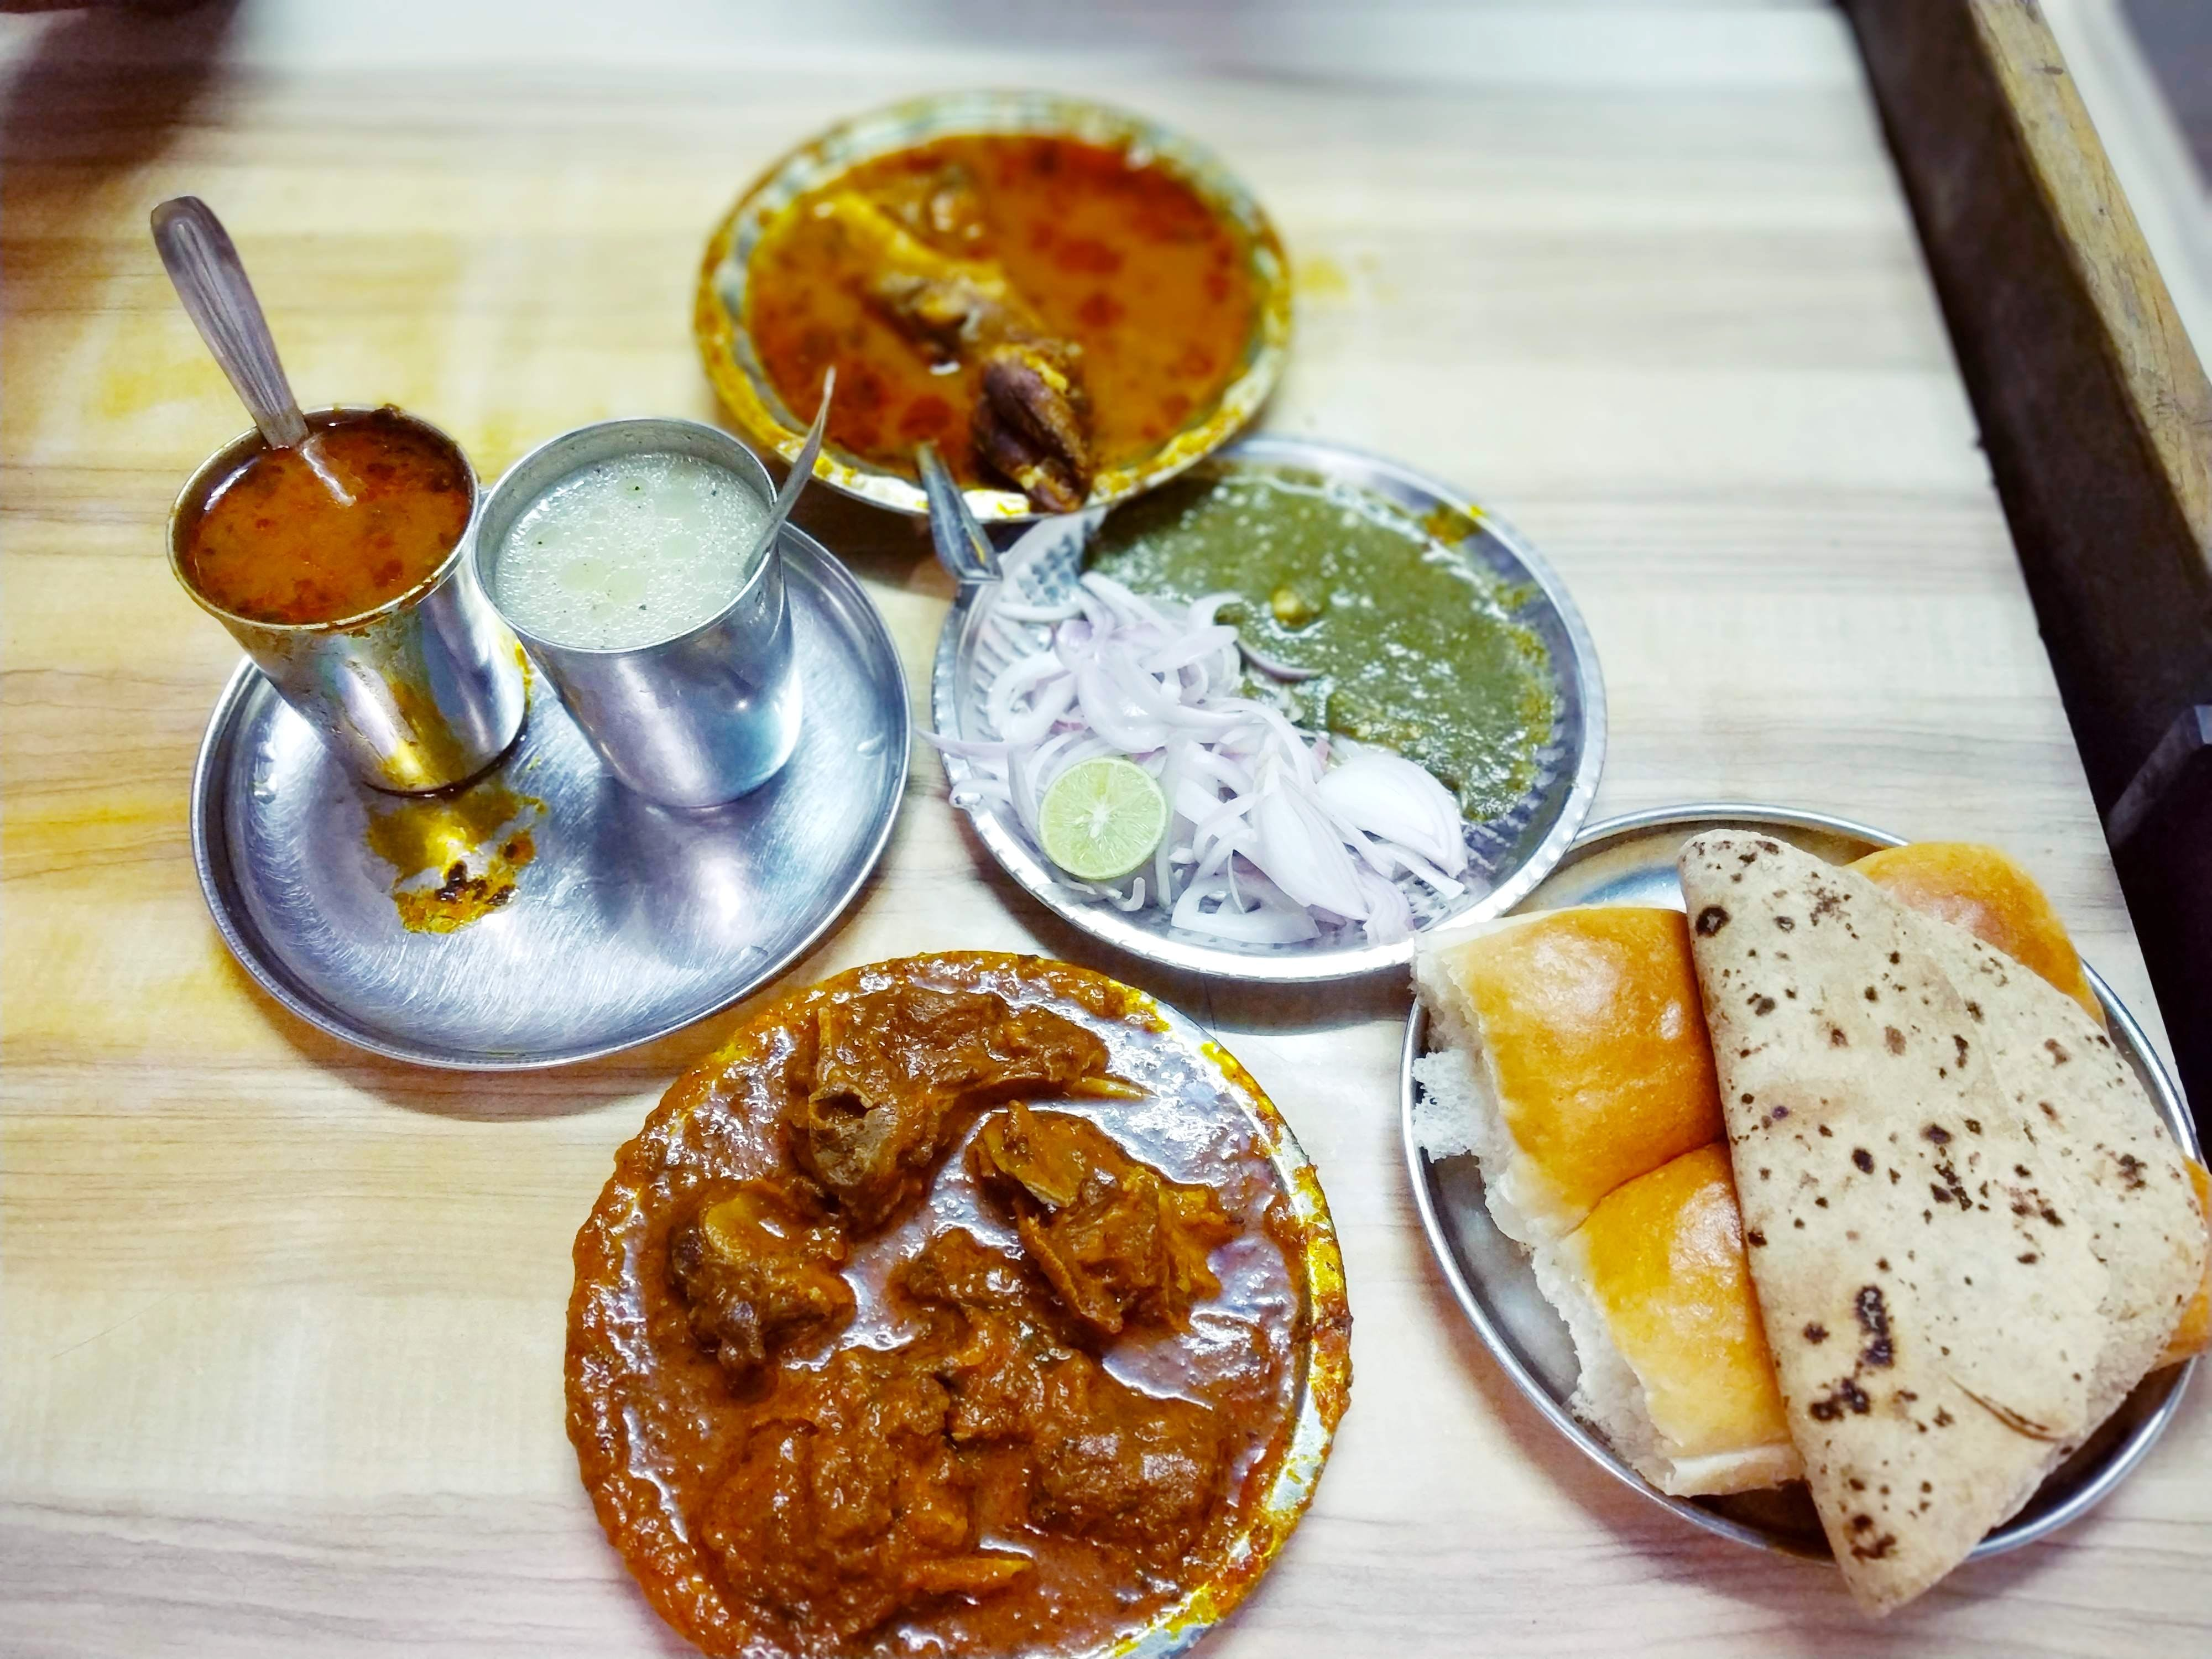 Dish,Food,Cuisine,Ingredient,Meal,Comfort food,Produce,Indian cuisine,Breakfast,Recipe